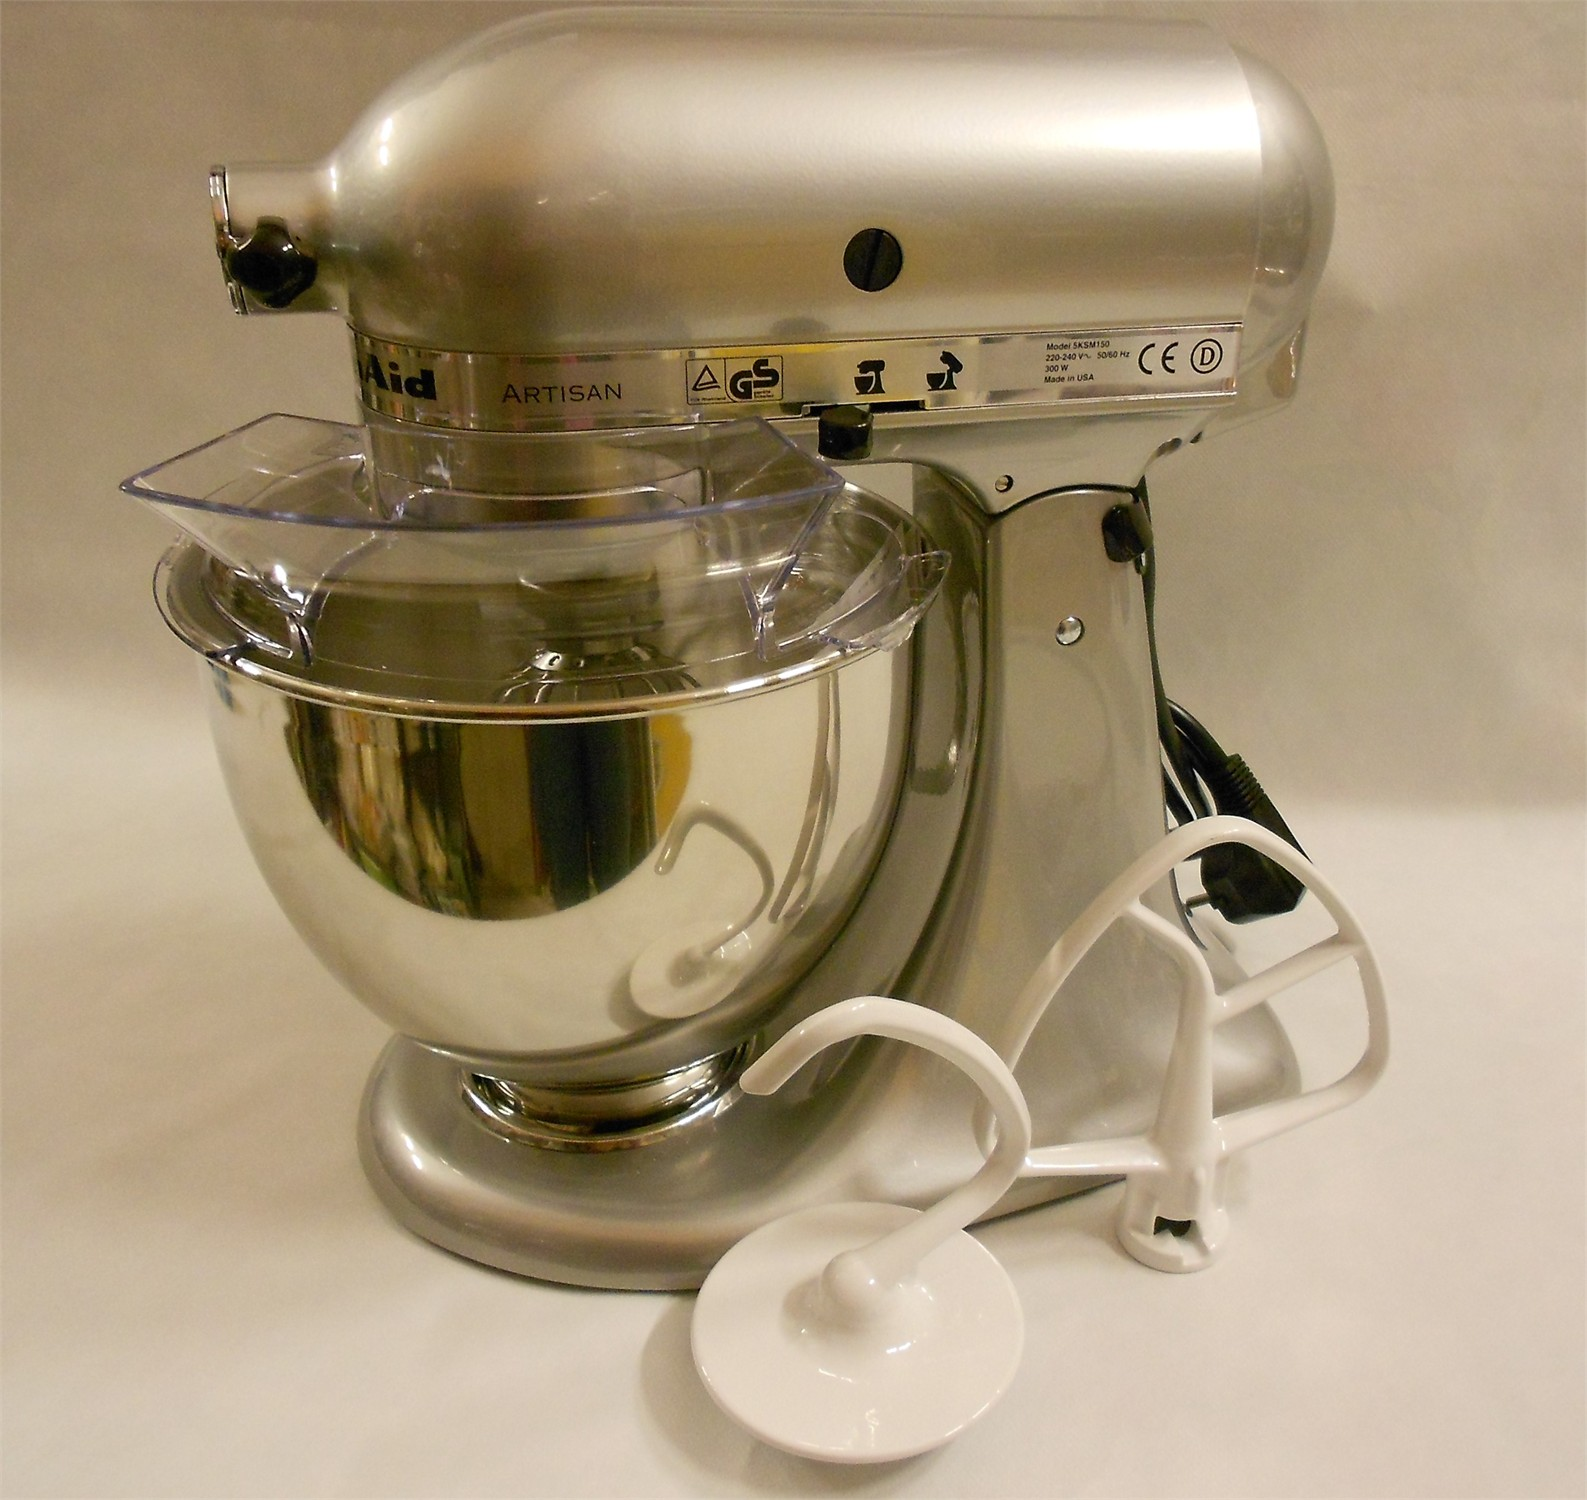 Planetaria KitchenAid Silver 4,8 lt. - KitchenAid - Piccoli ...